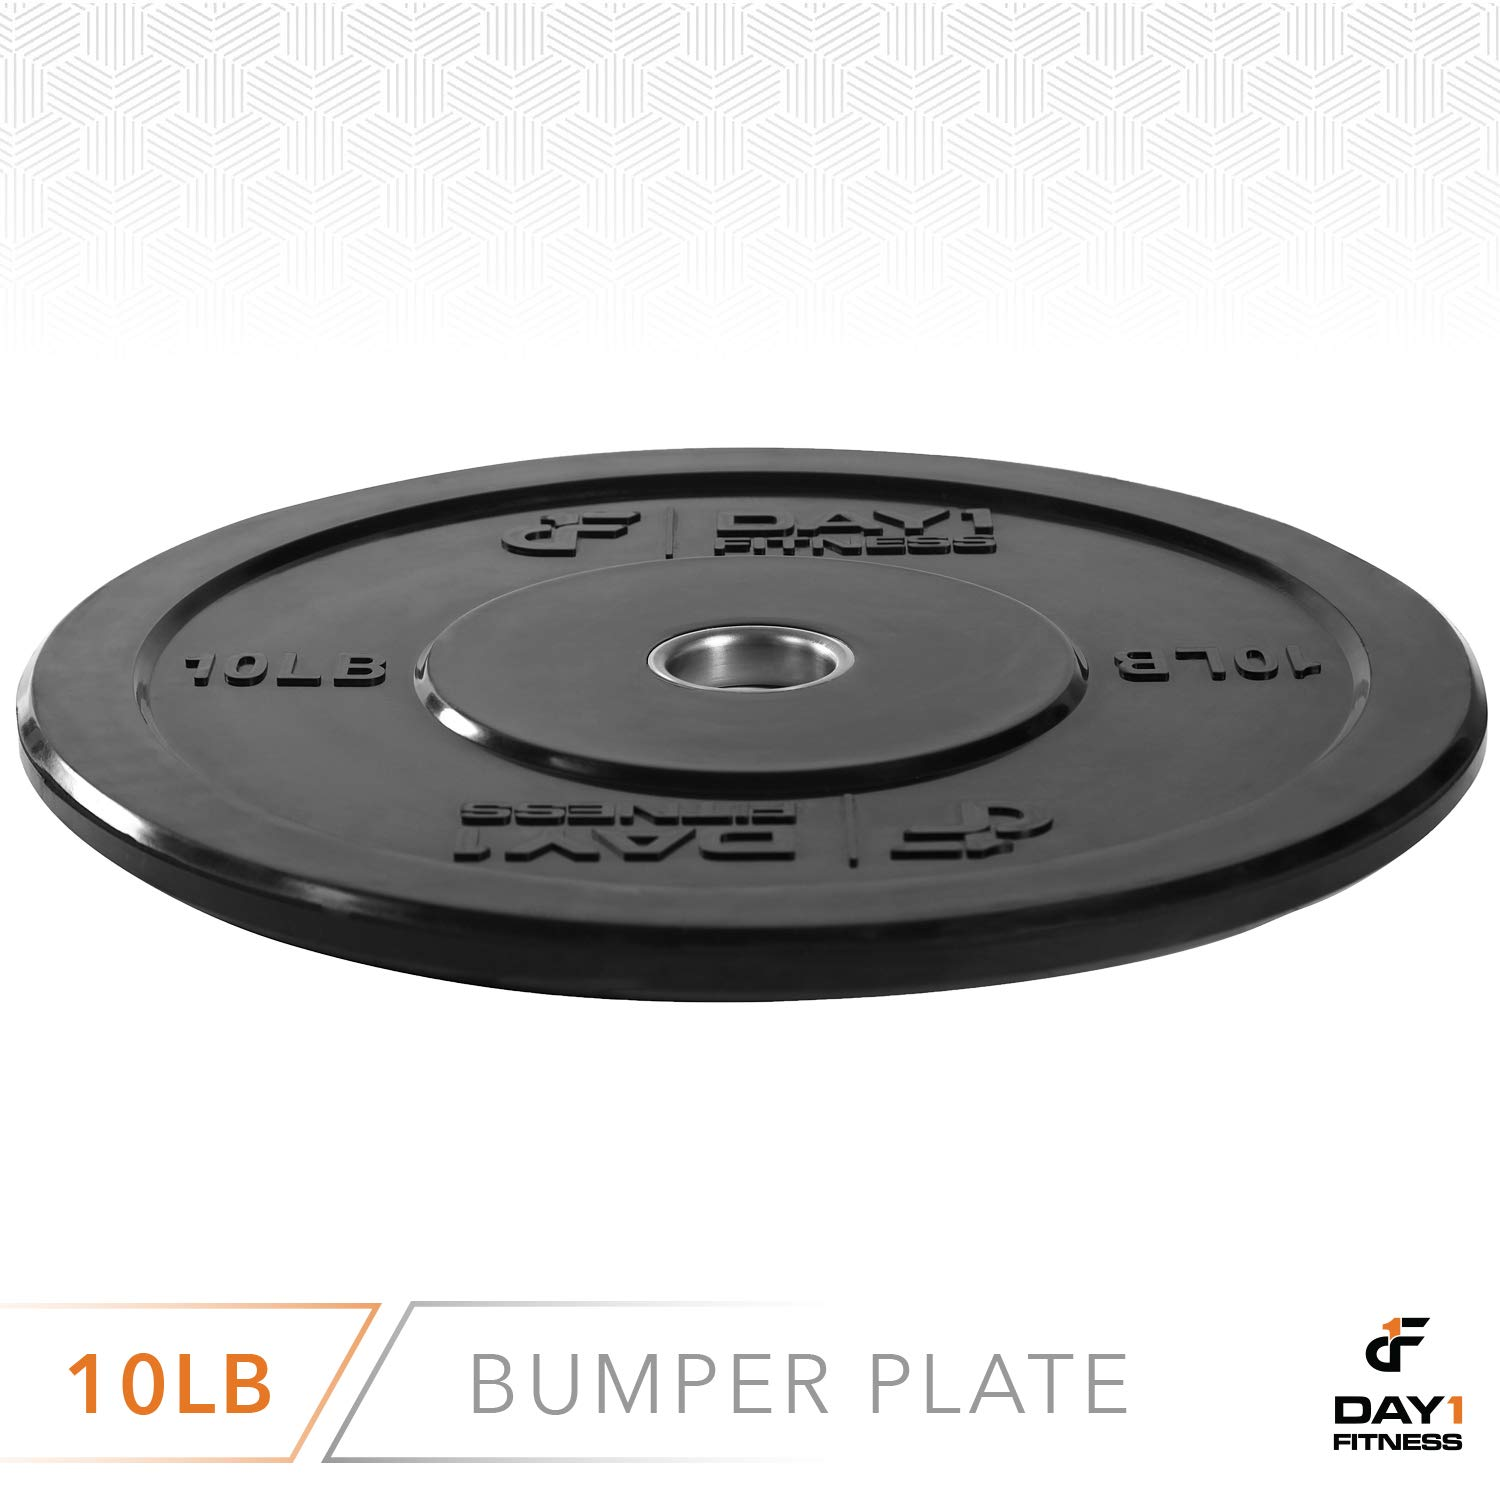 """Day 1 Fitness Olympic Bumper Weighted Plate 2"""" for Barbells, Bars – 10 lb Single Plate - Shock-Absorbing, Minimal Bounce Steel Weights with Bumpers for Lifting, Strength Training, and Working Out by Day 1 Fitness (Image #3)"""